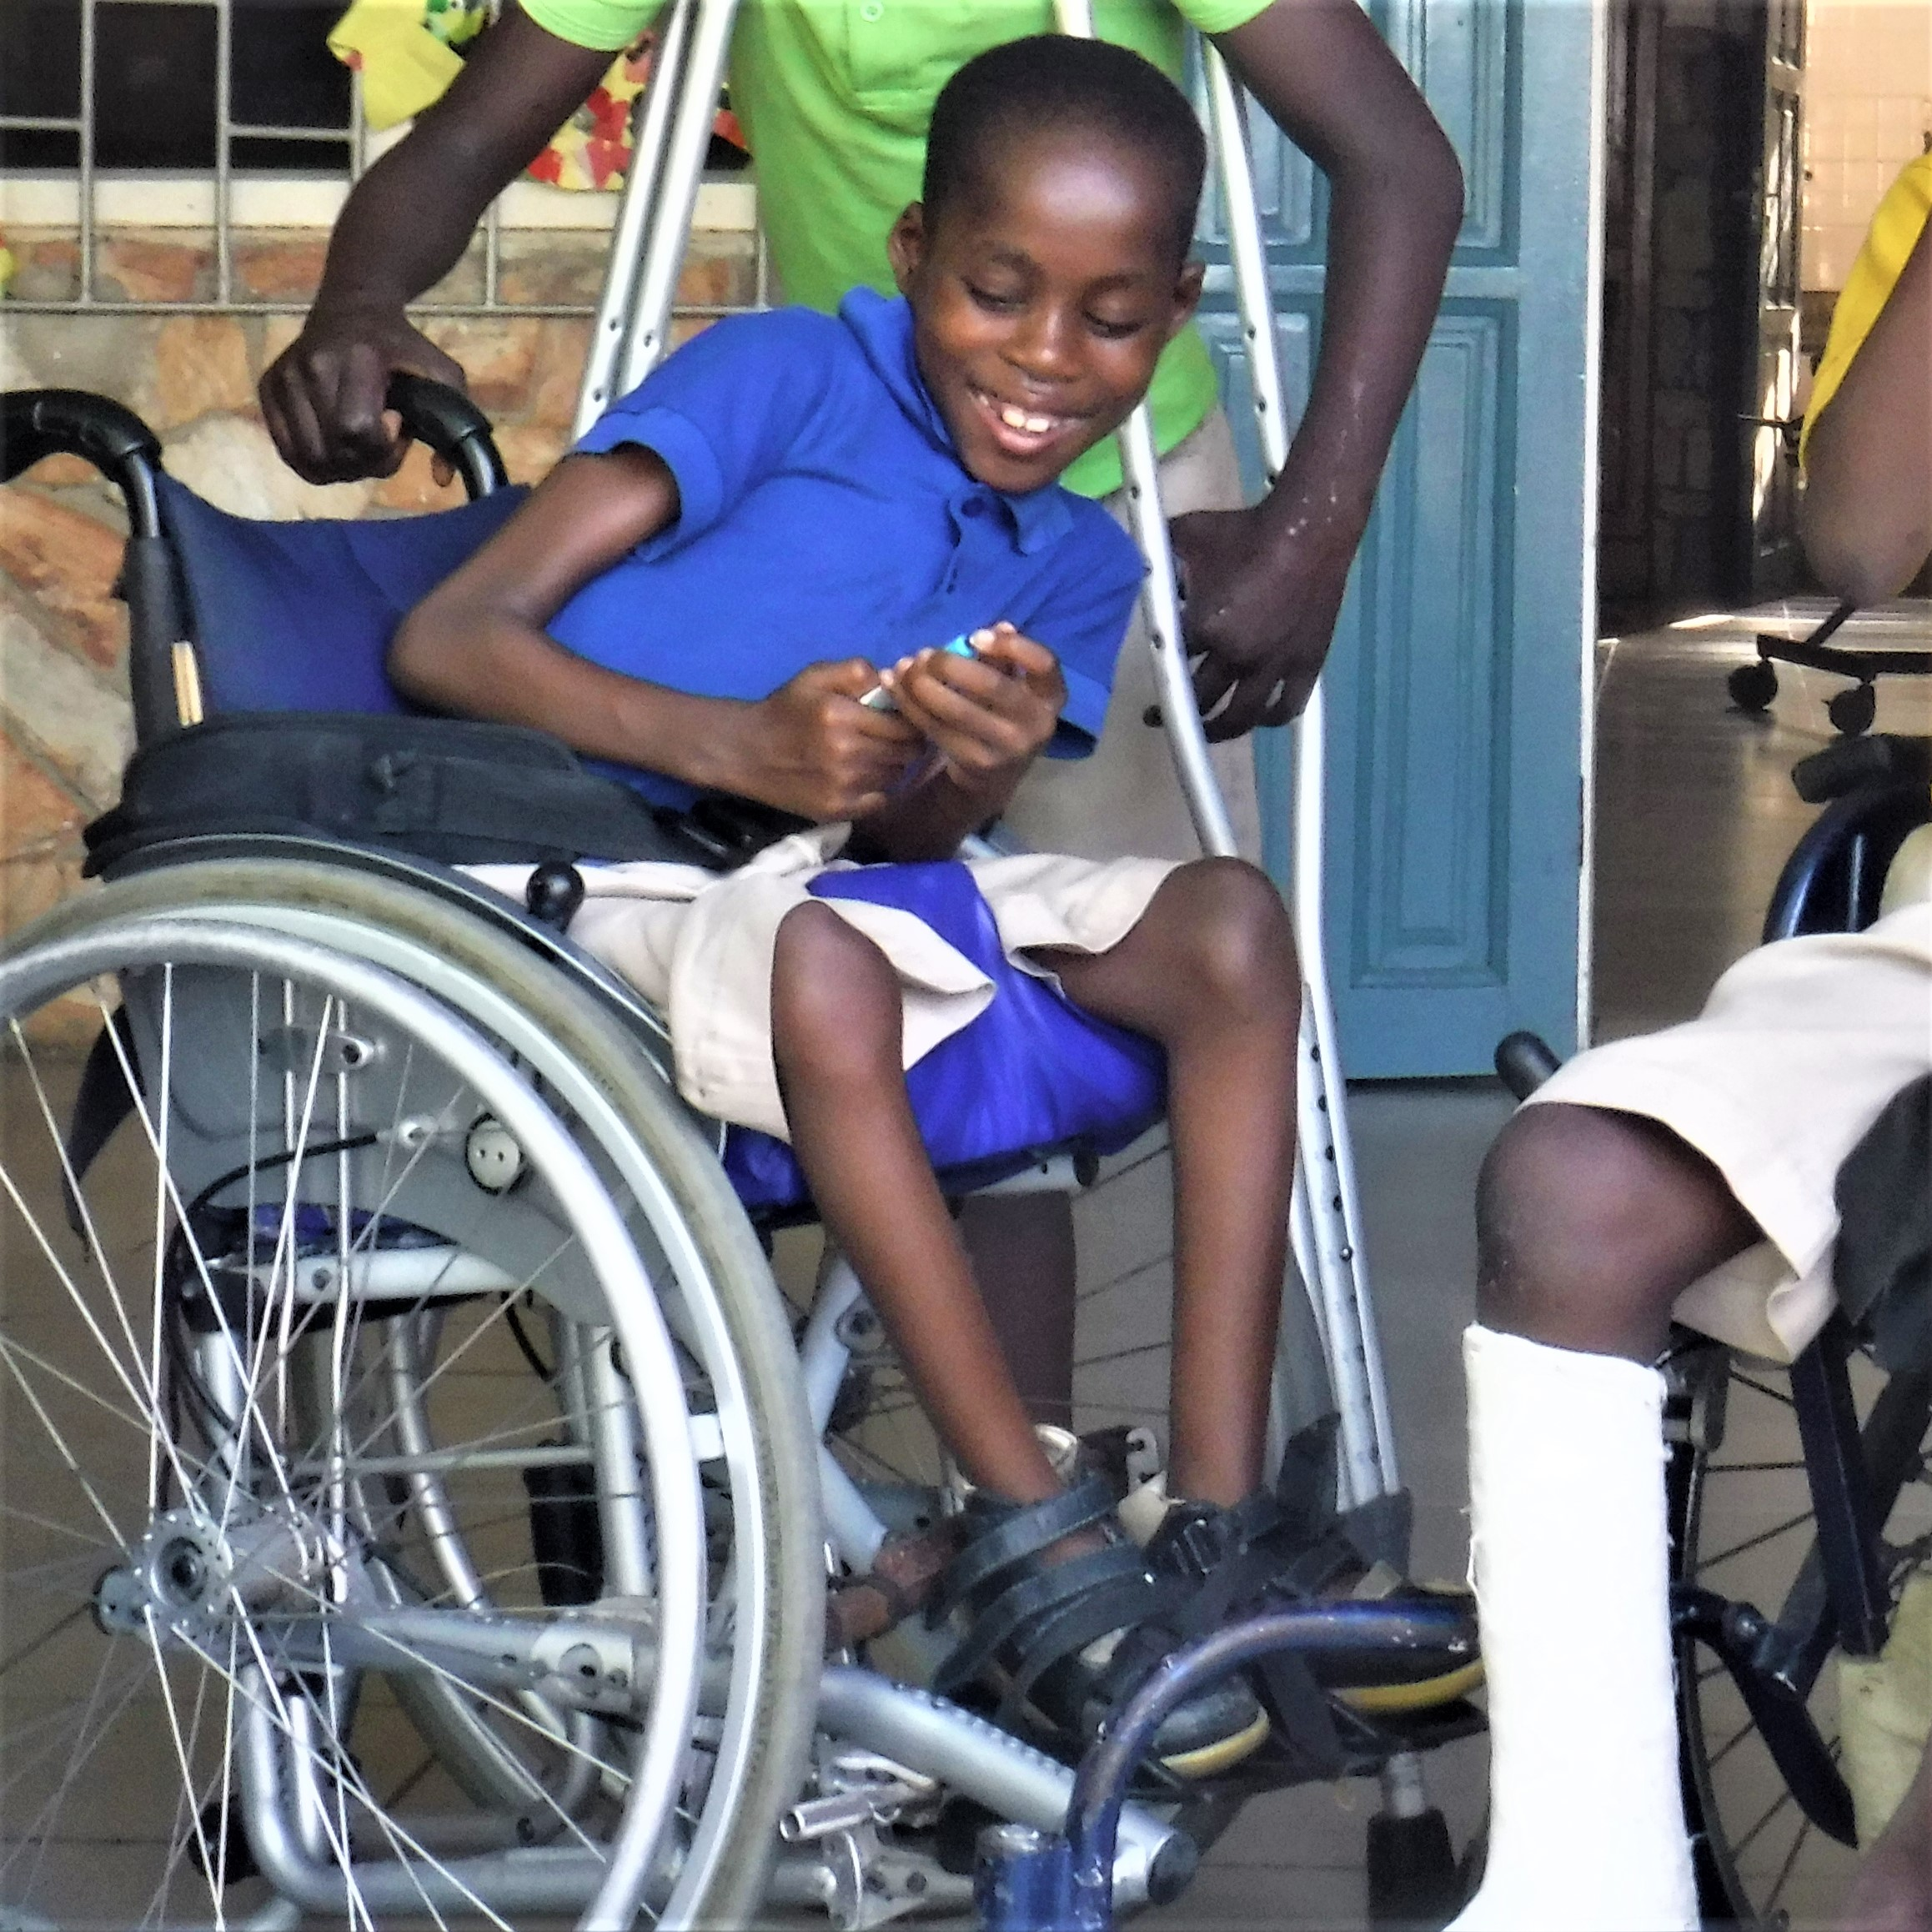 Grant a Wheelchair - $100    Provide a wheelchair to help improve a child's independent mobility.